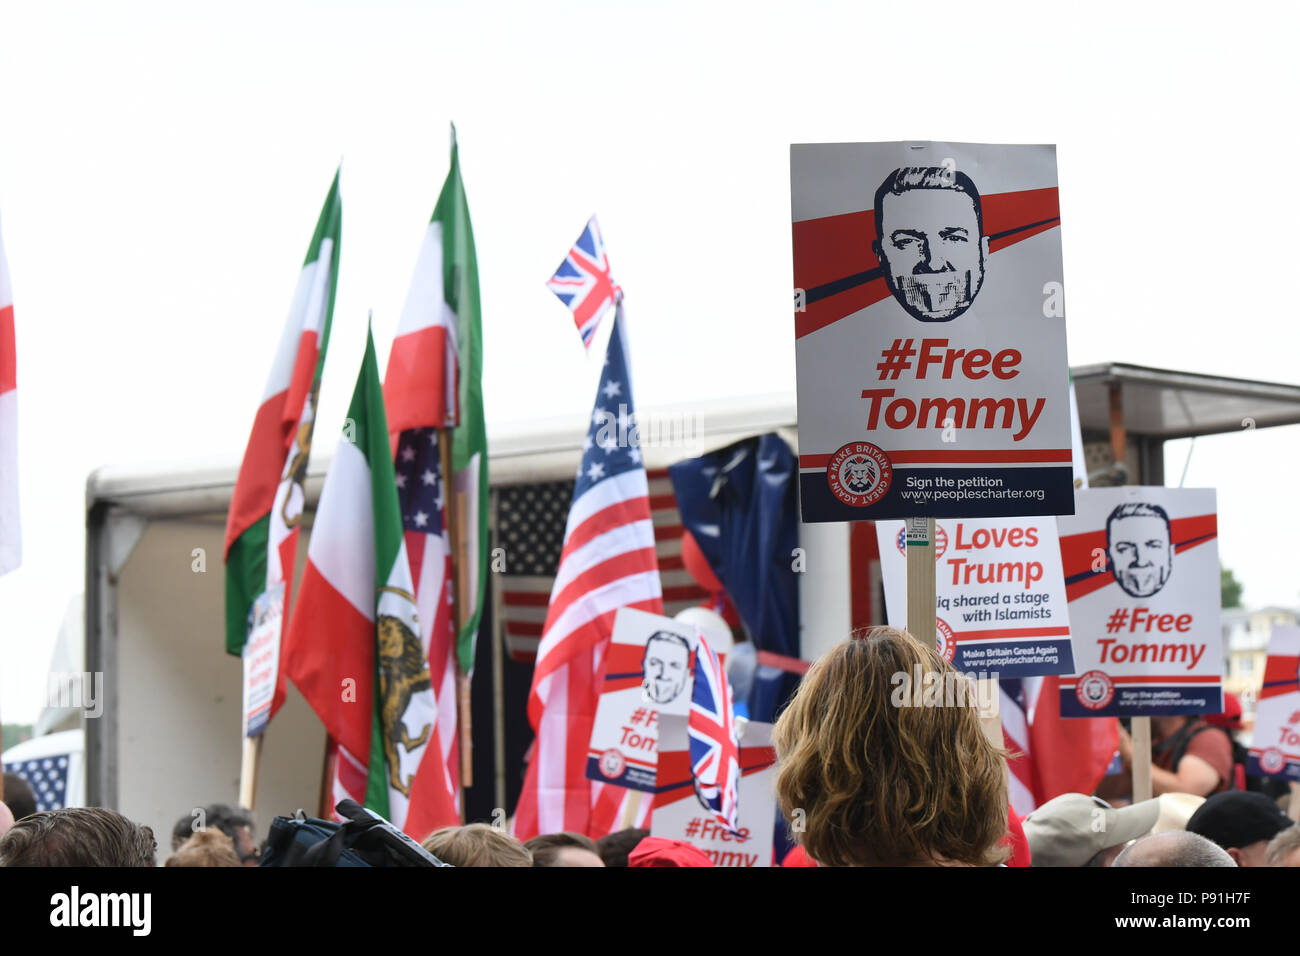 London, UK, 14 July 2018. Pro-Trump rally to Welcoming Trump to London Rally - Make Britain Great Again outside US Embassy, London, UK. July 14 2018. Credit: Picture Capital/Alamy Live News - Stock Image